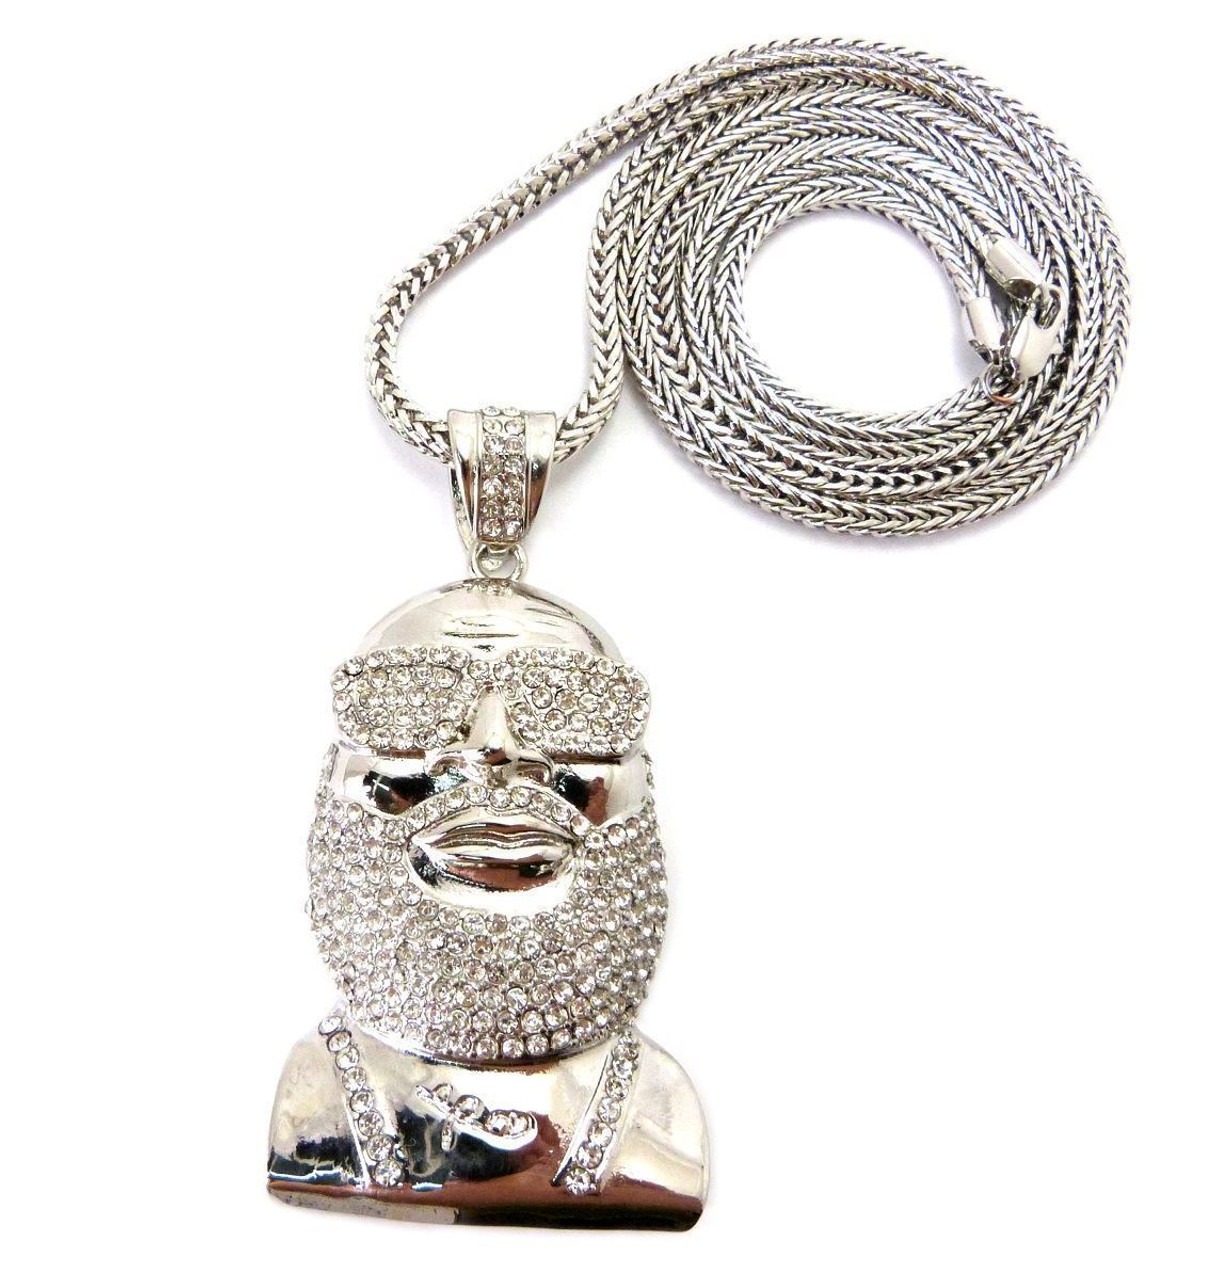 Rick ross silver fully iced out pendant w free 36 chain the rick ross silver fully iced out pendant w free 36 chain aloadofball Gallery